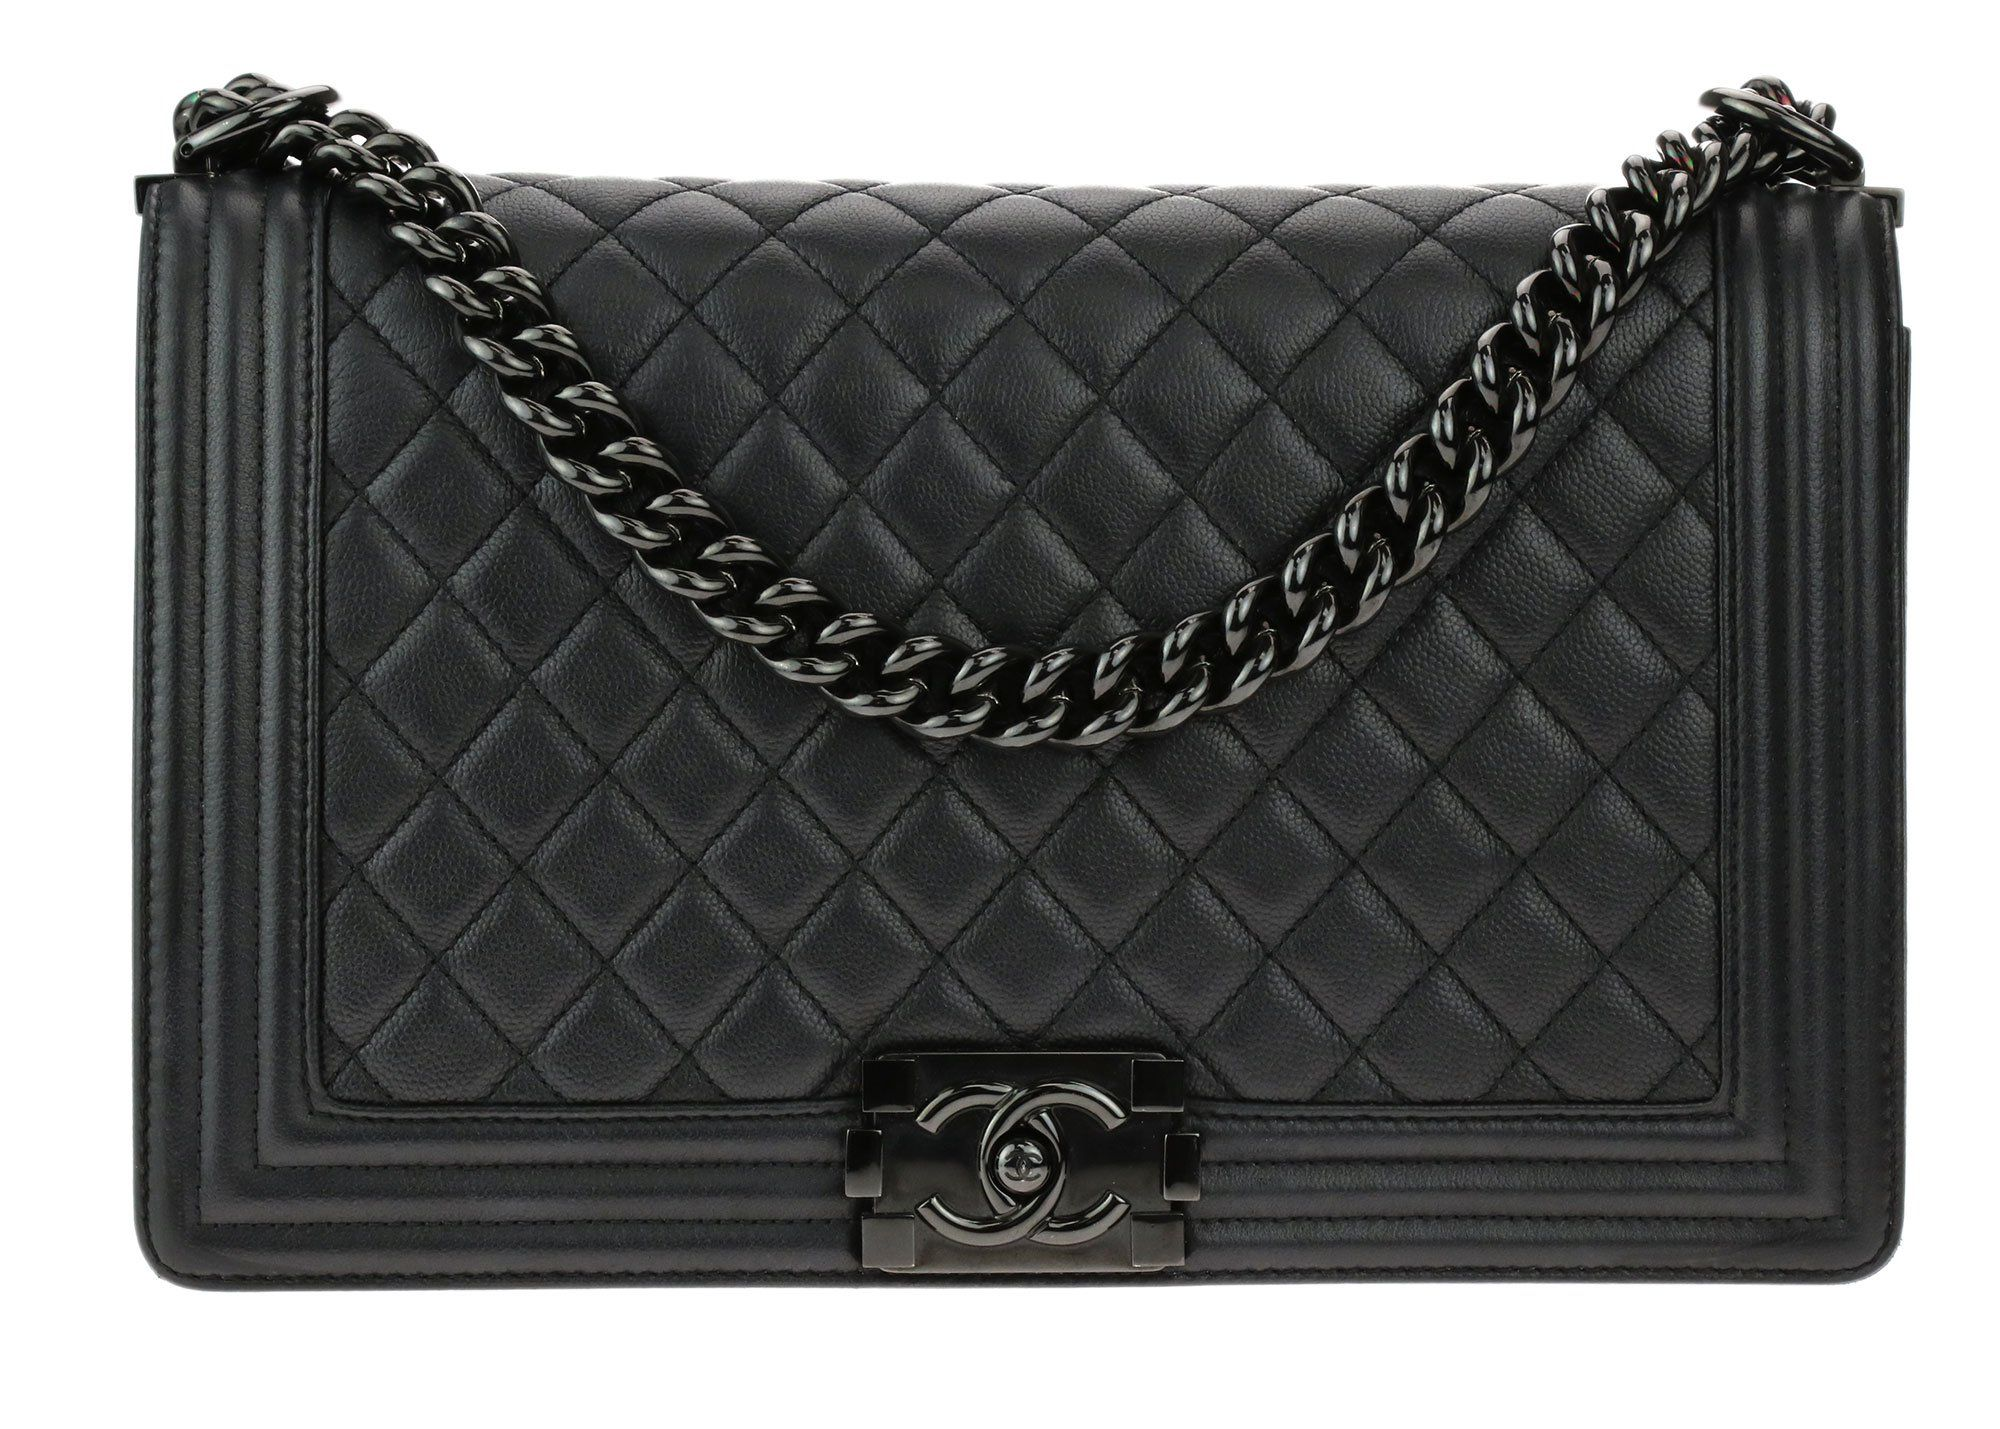 232bf7388ad8 Chanel New Medium So Black Caviar Leather Iridescent Boy Bag | I Own ...